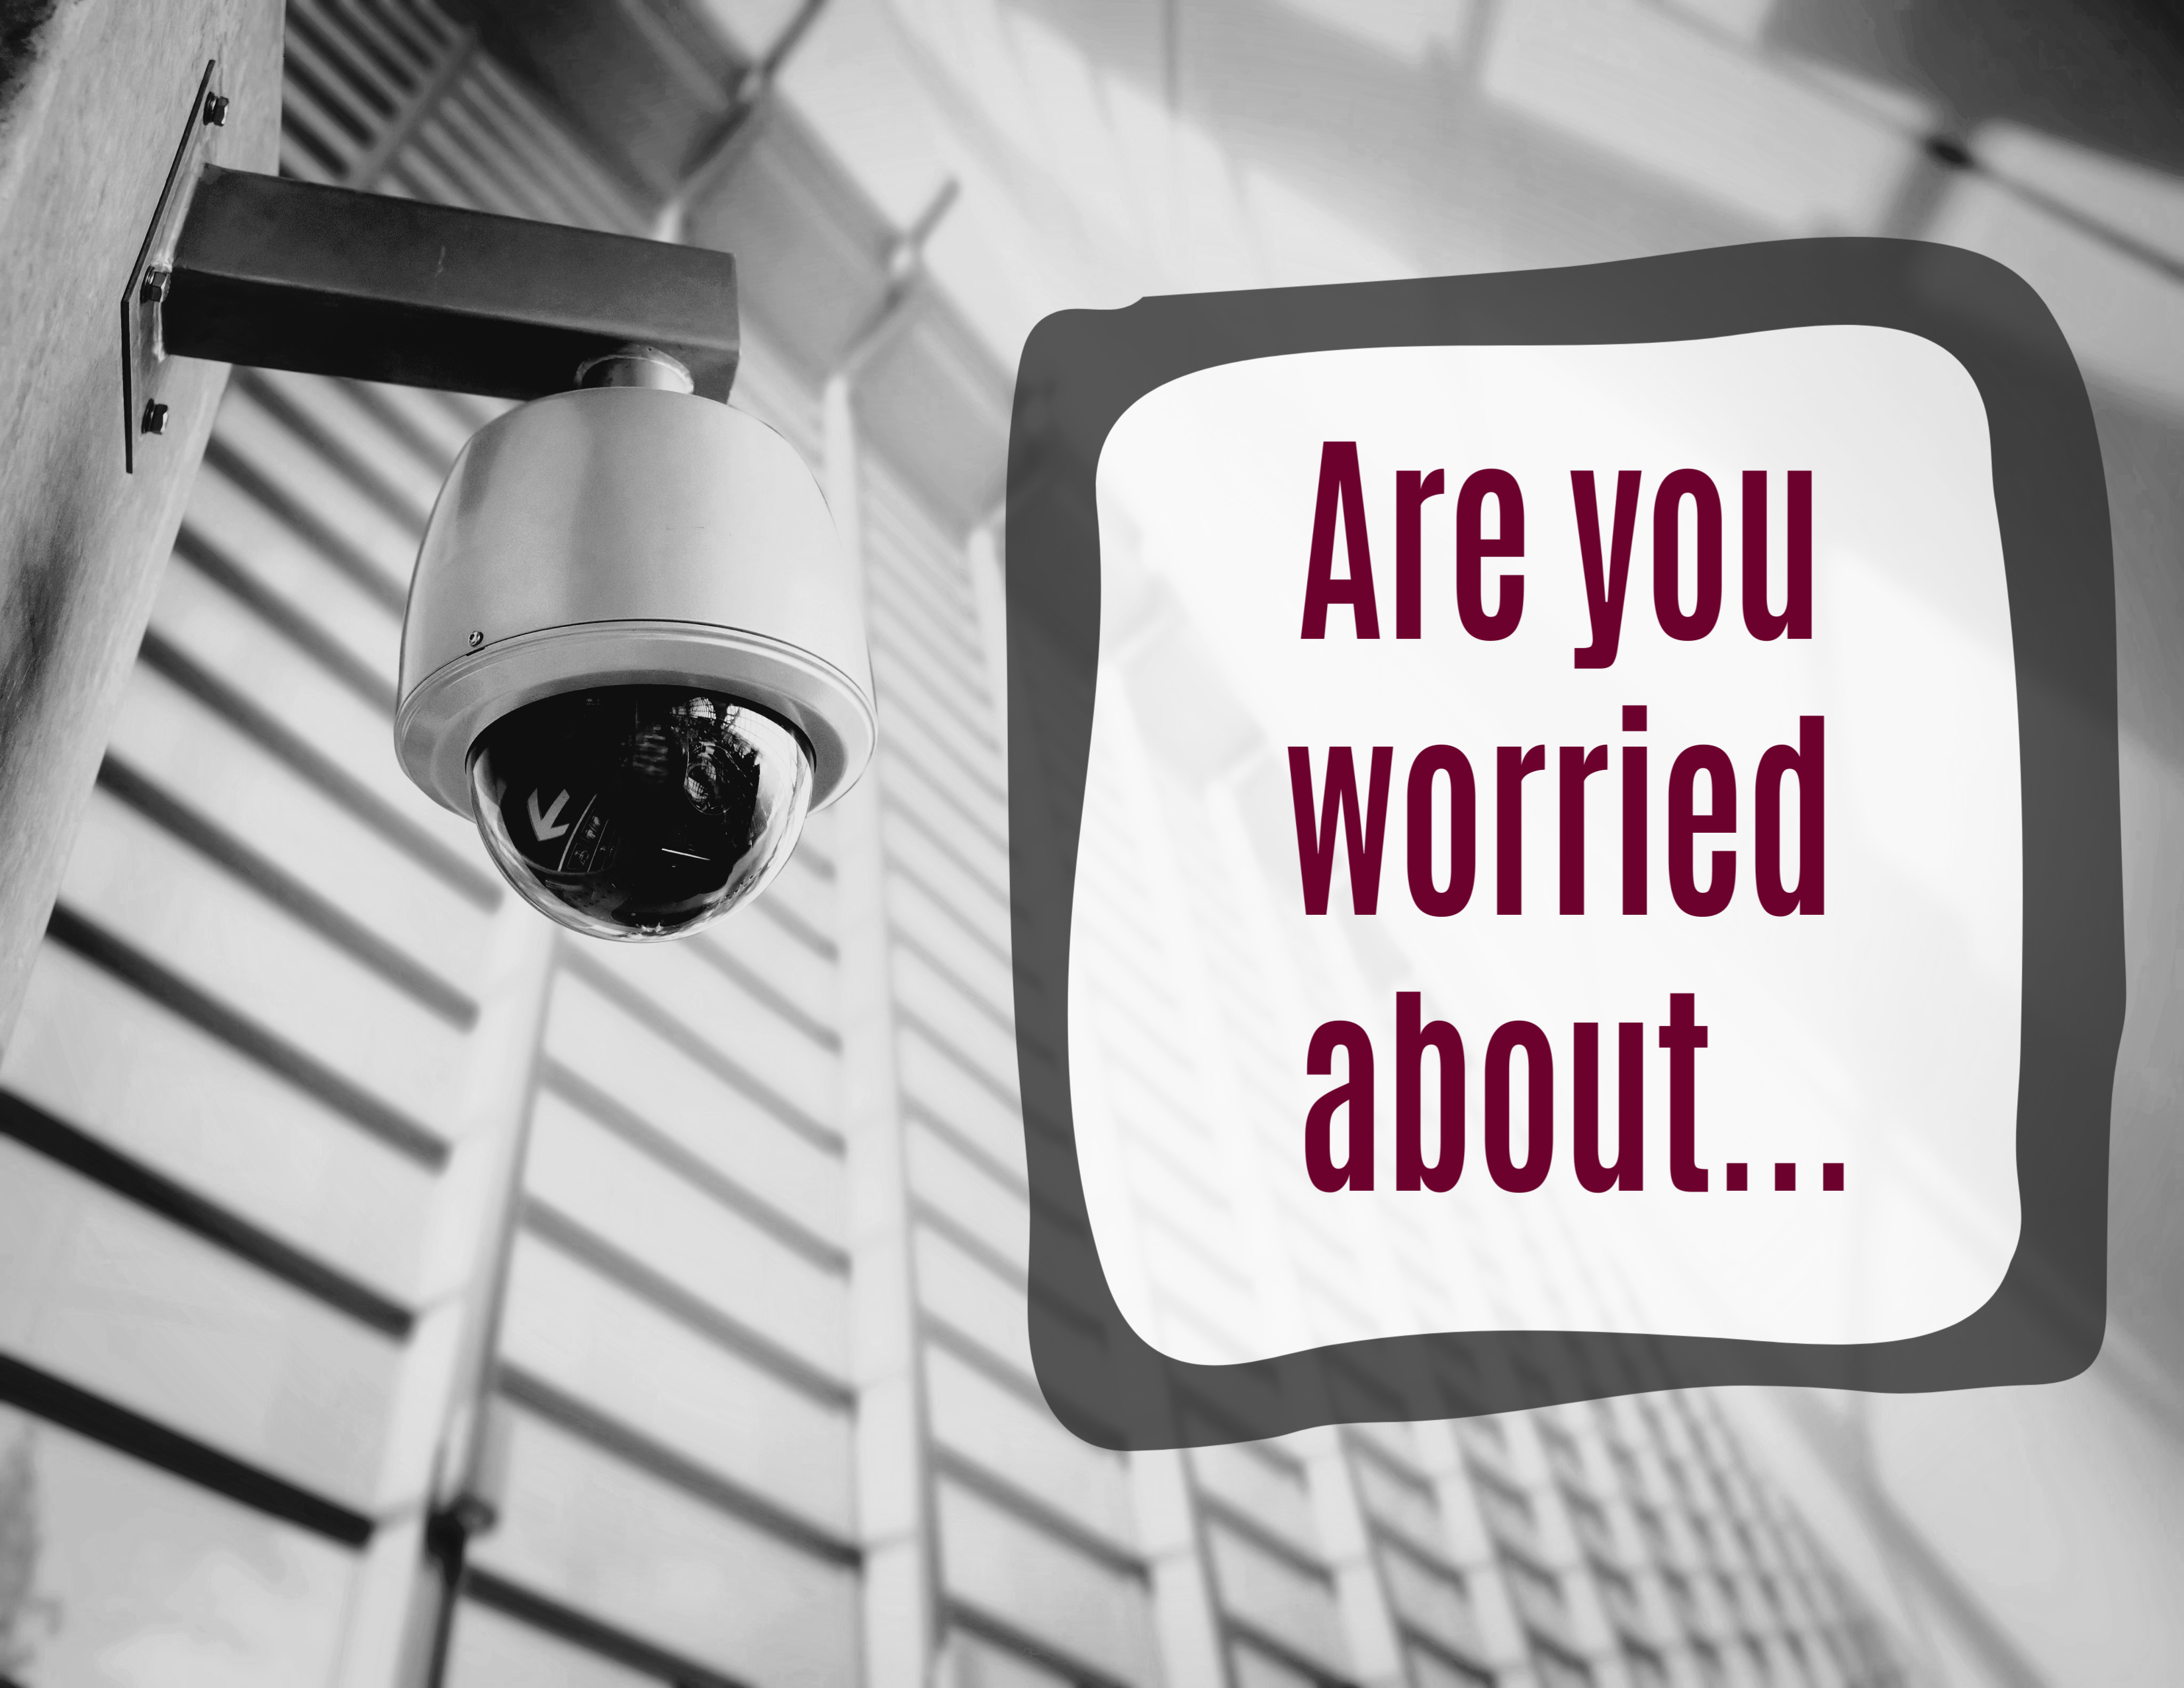 Why does your business need a surveillance system?